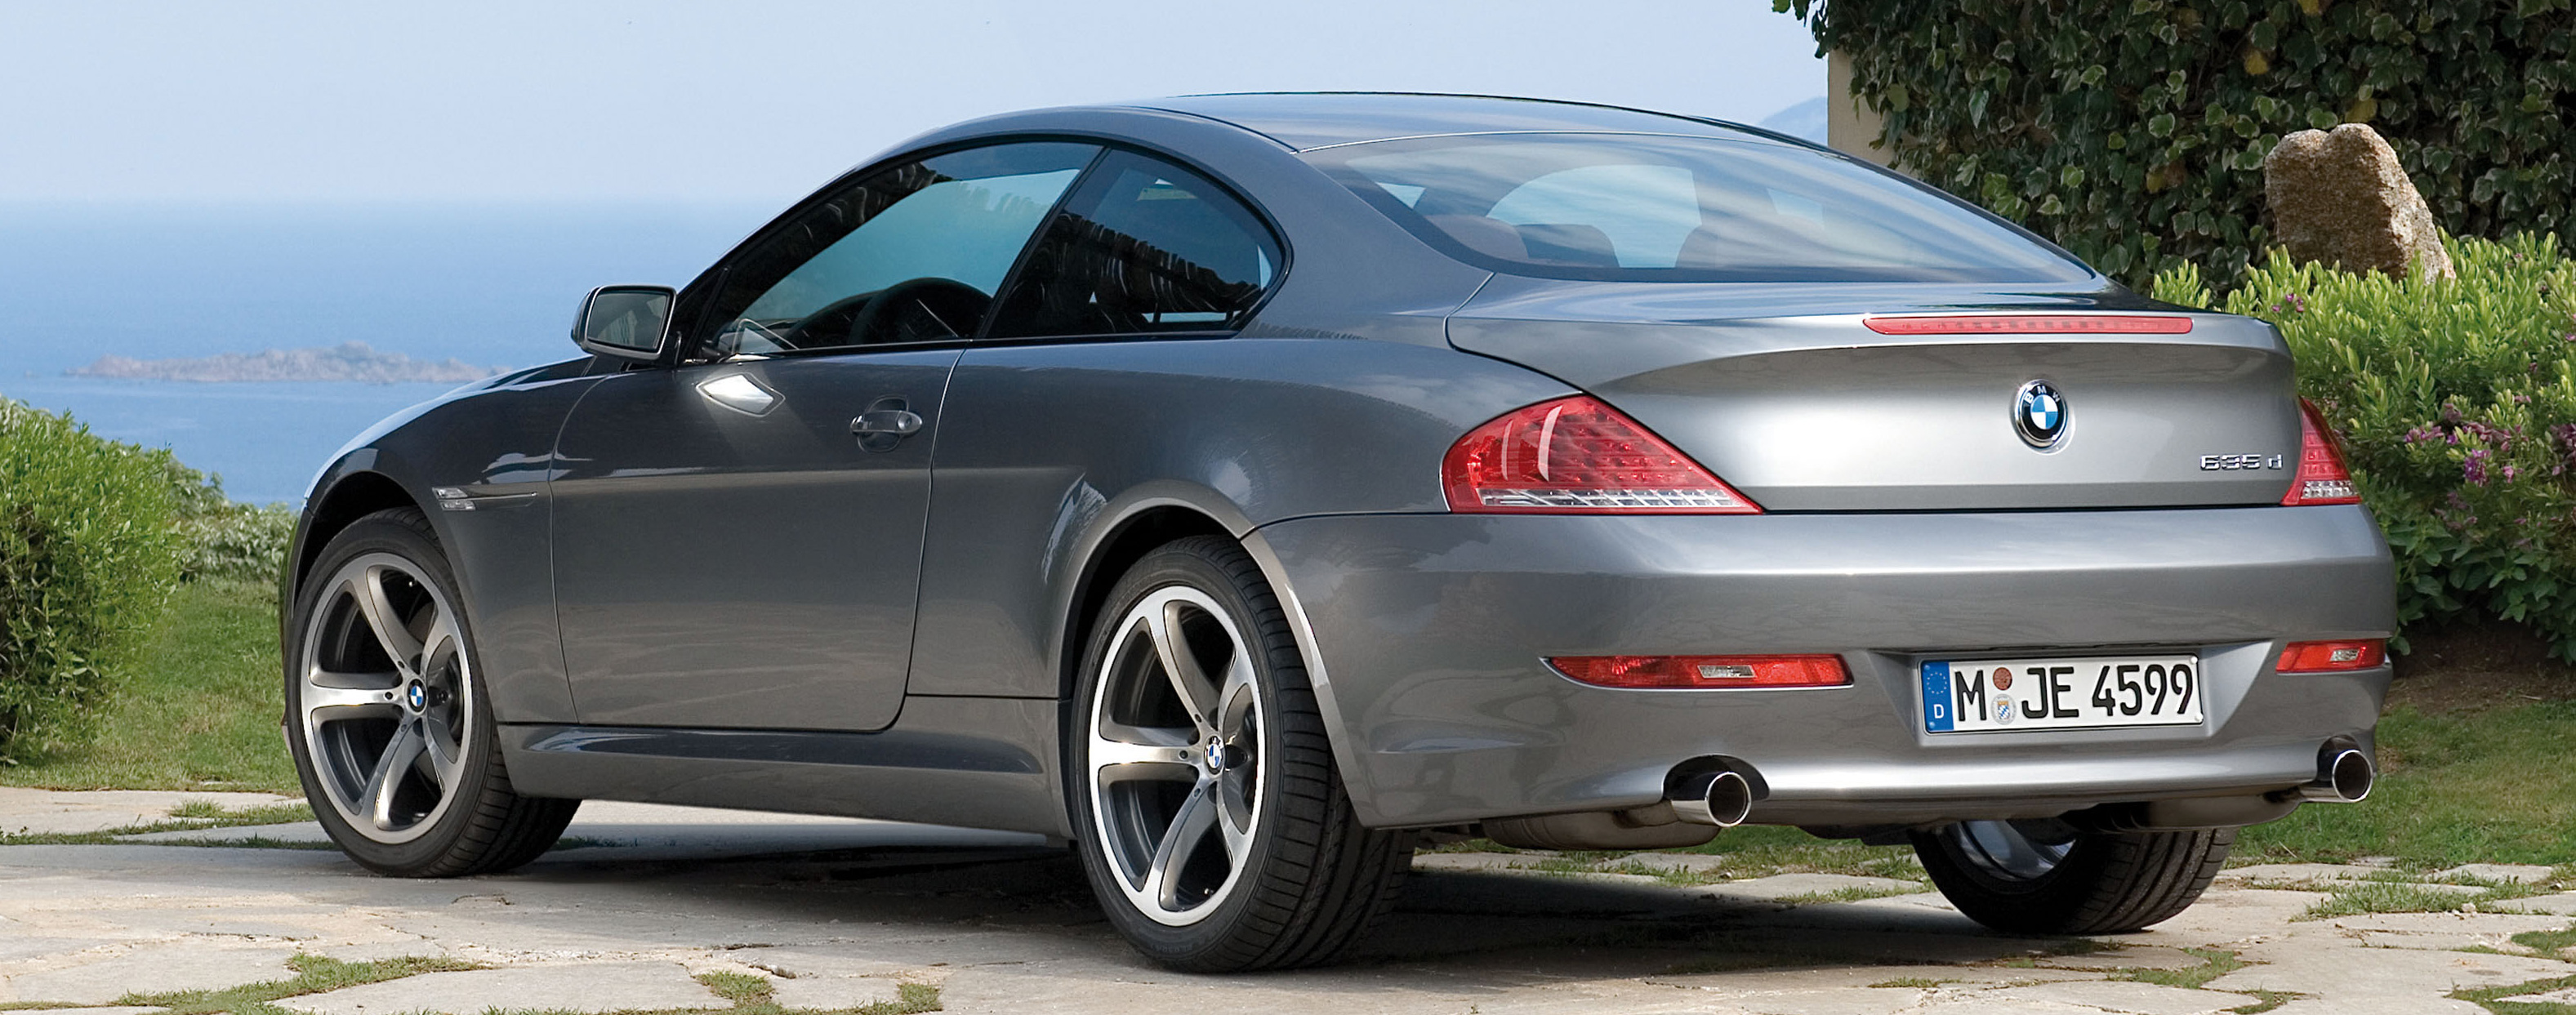 2010 Bmw 6 Series Image 14